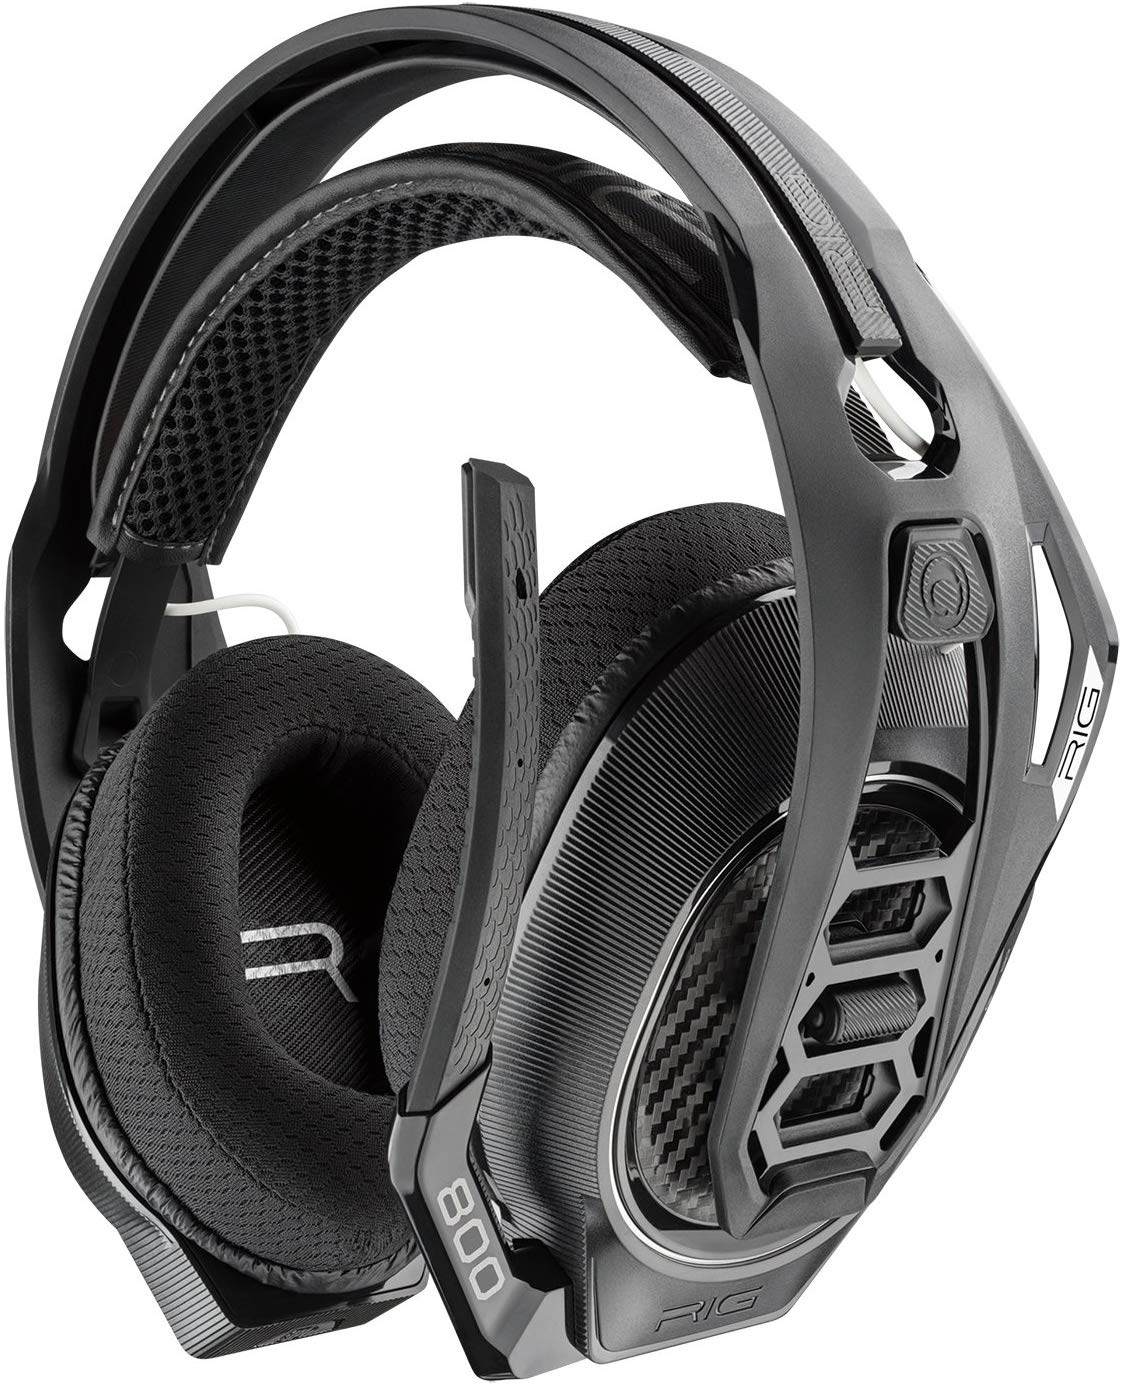 Plantronics Gaming Headset